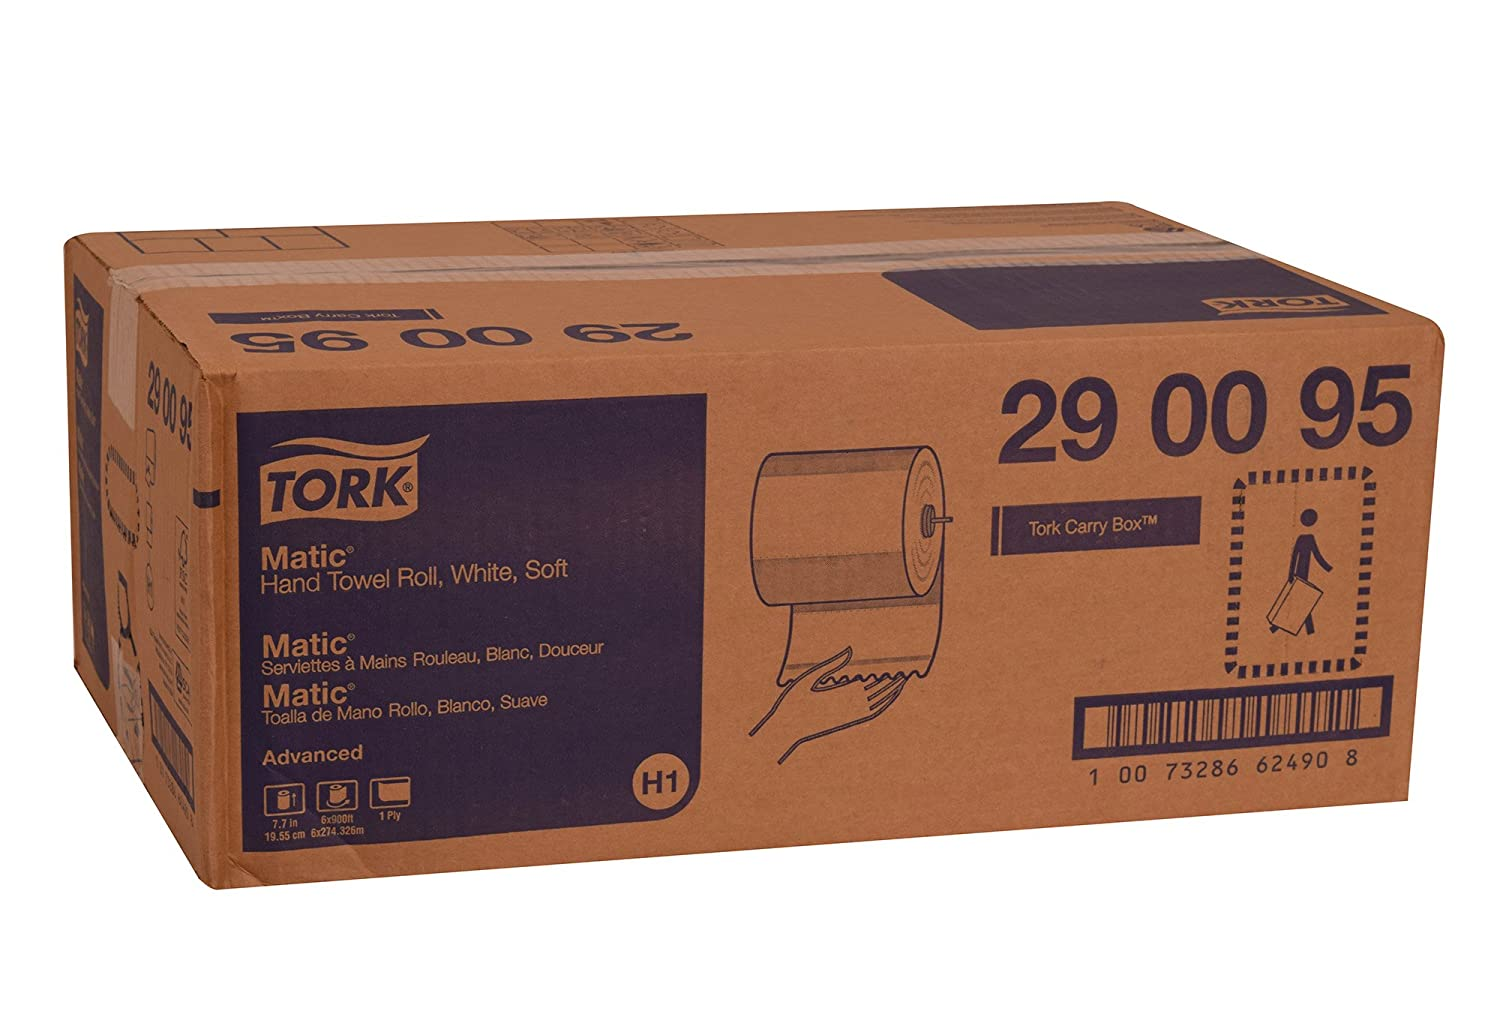 Tork 290095 avanzada suave Single-ply mano rollo toalla, blanco (Pack de 6): Amazon.es: Industria, empresas y ciencia